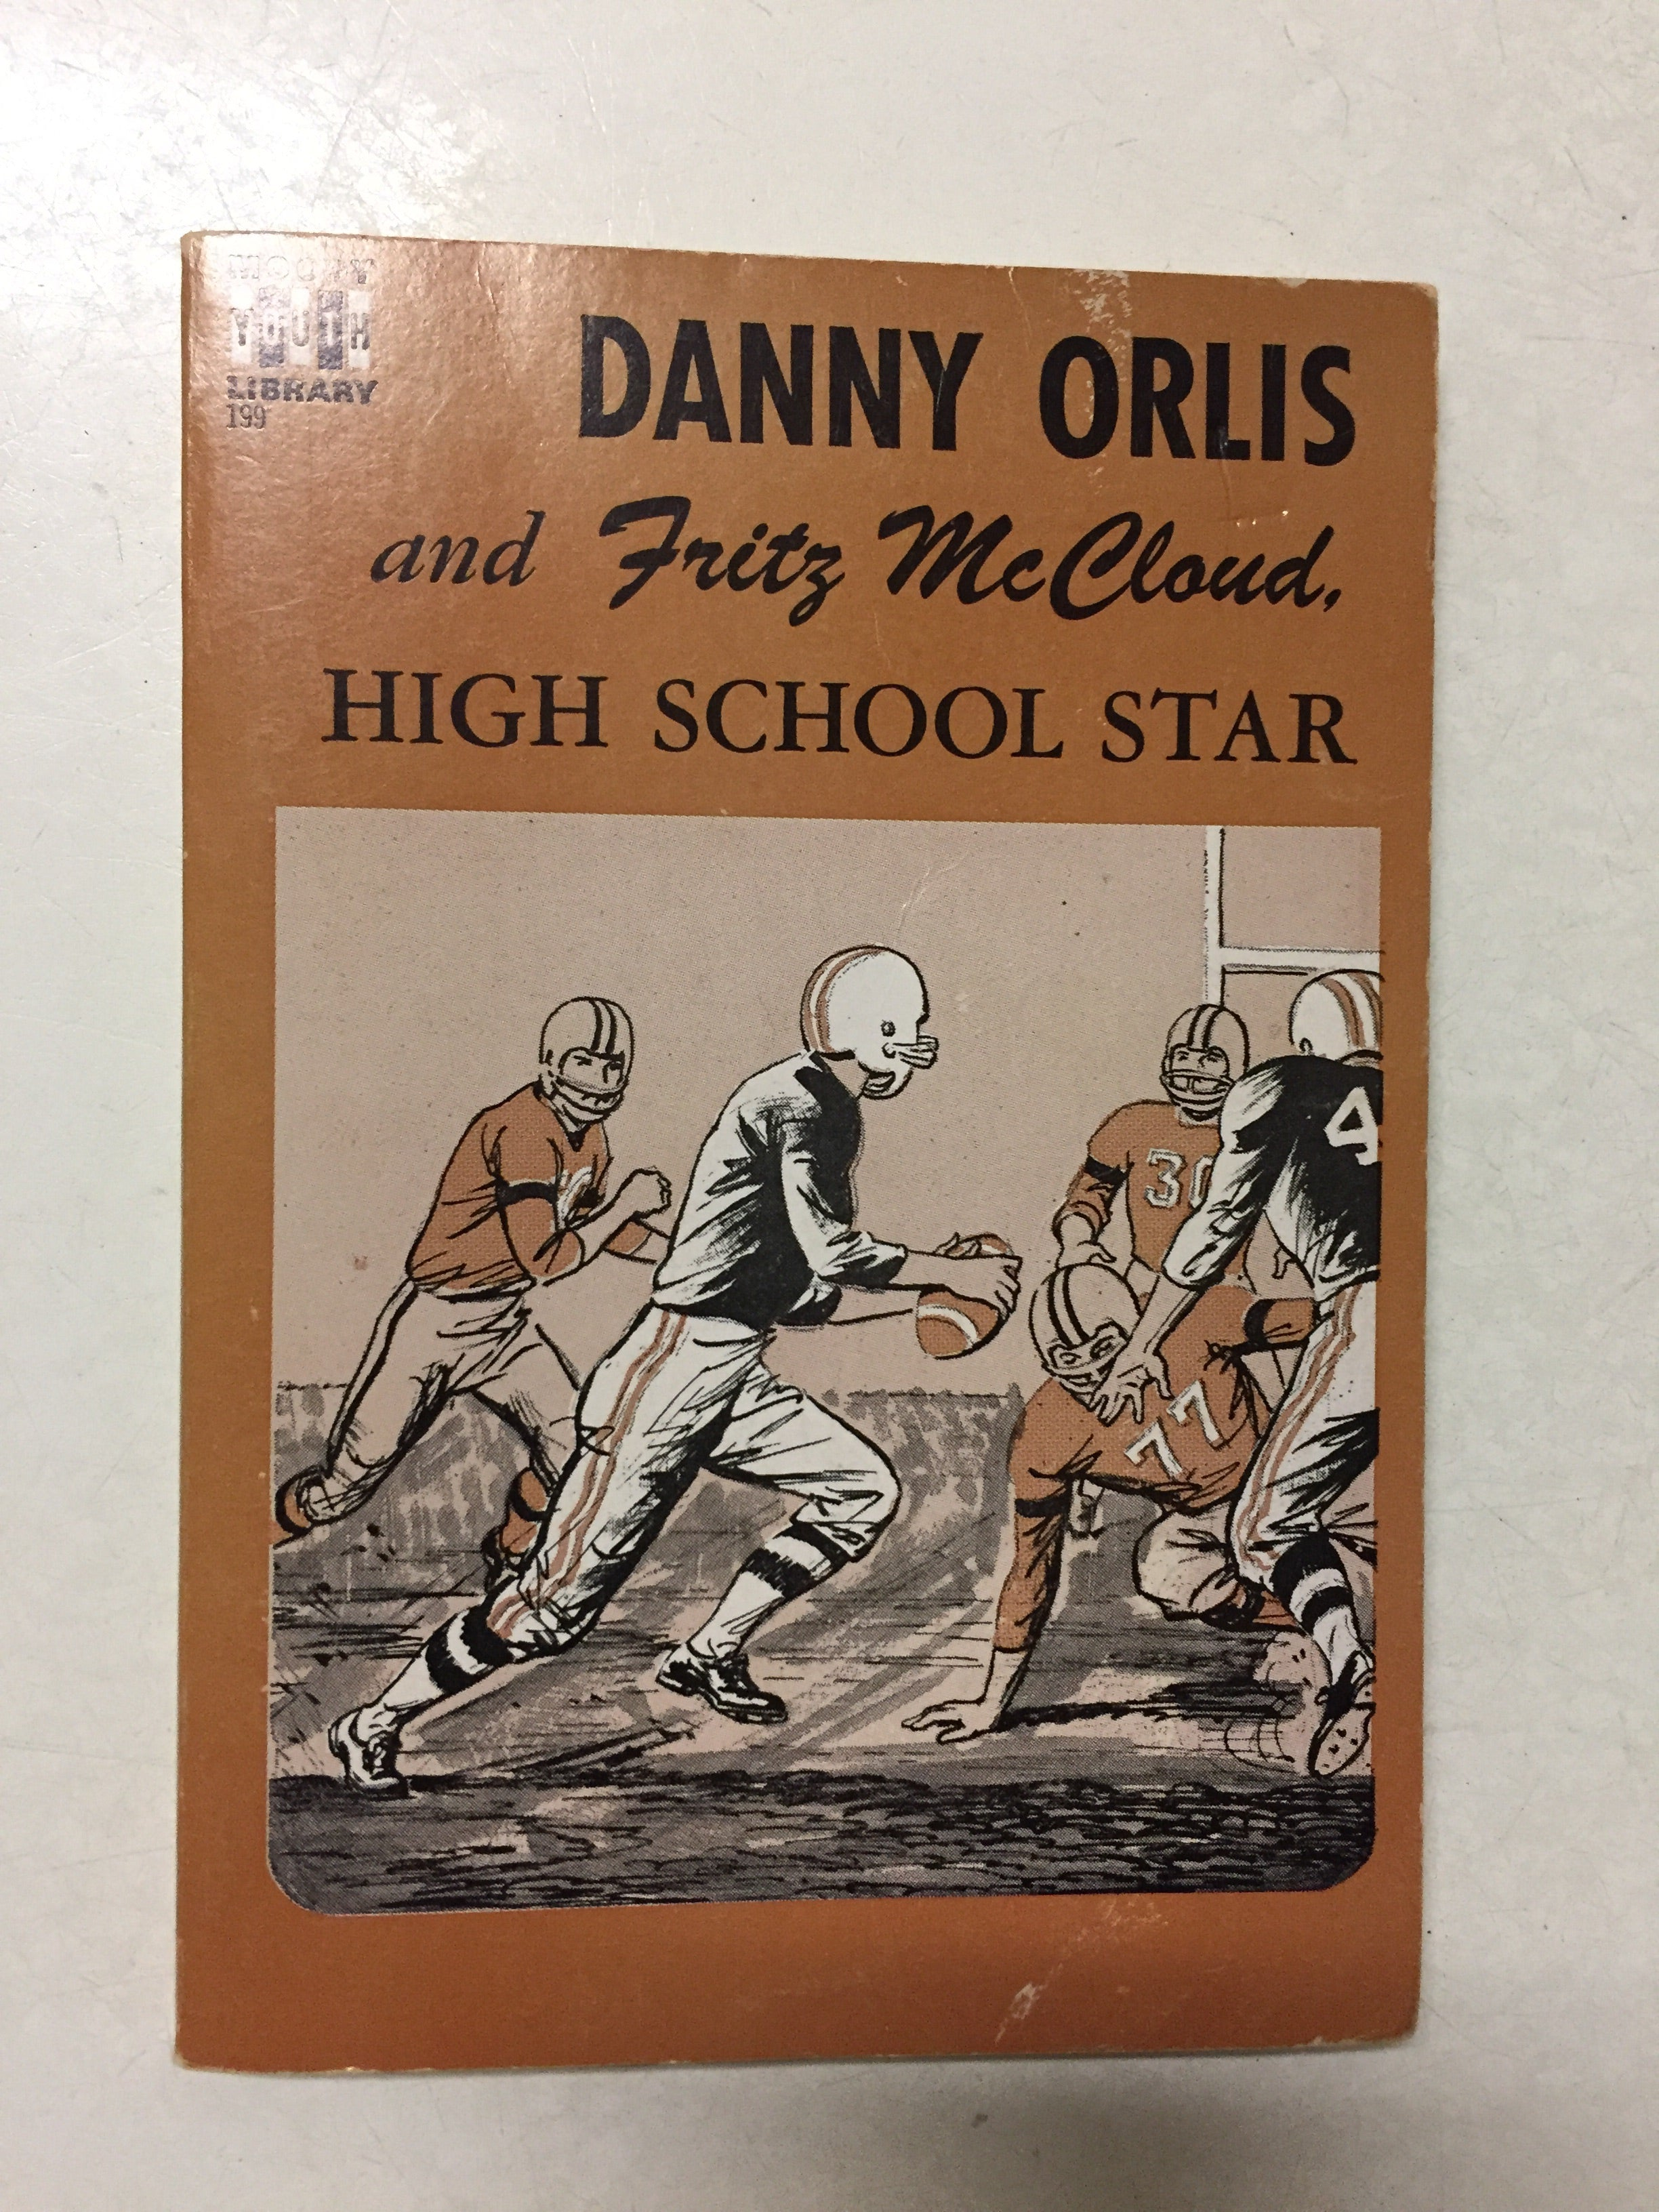 Danny Orlis and Fritz McCloud High School Star